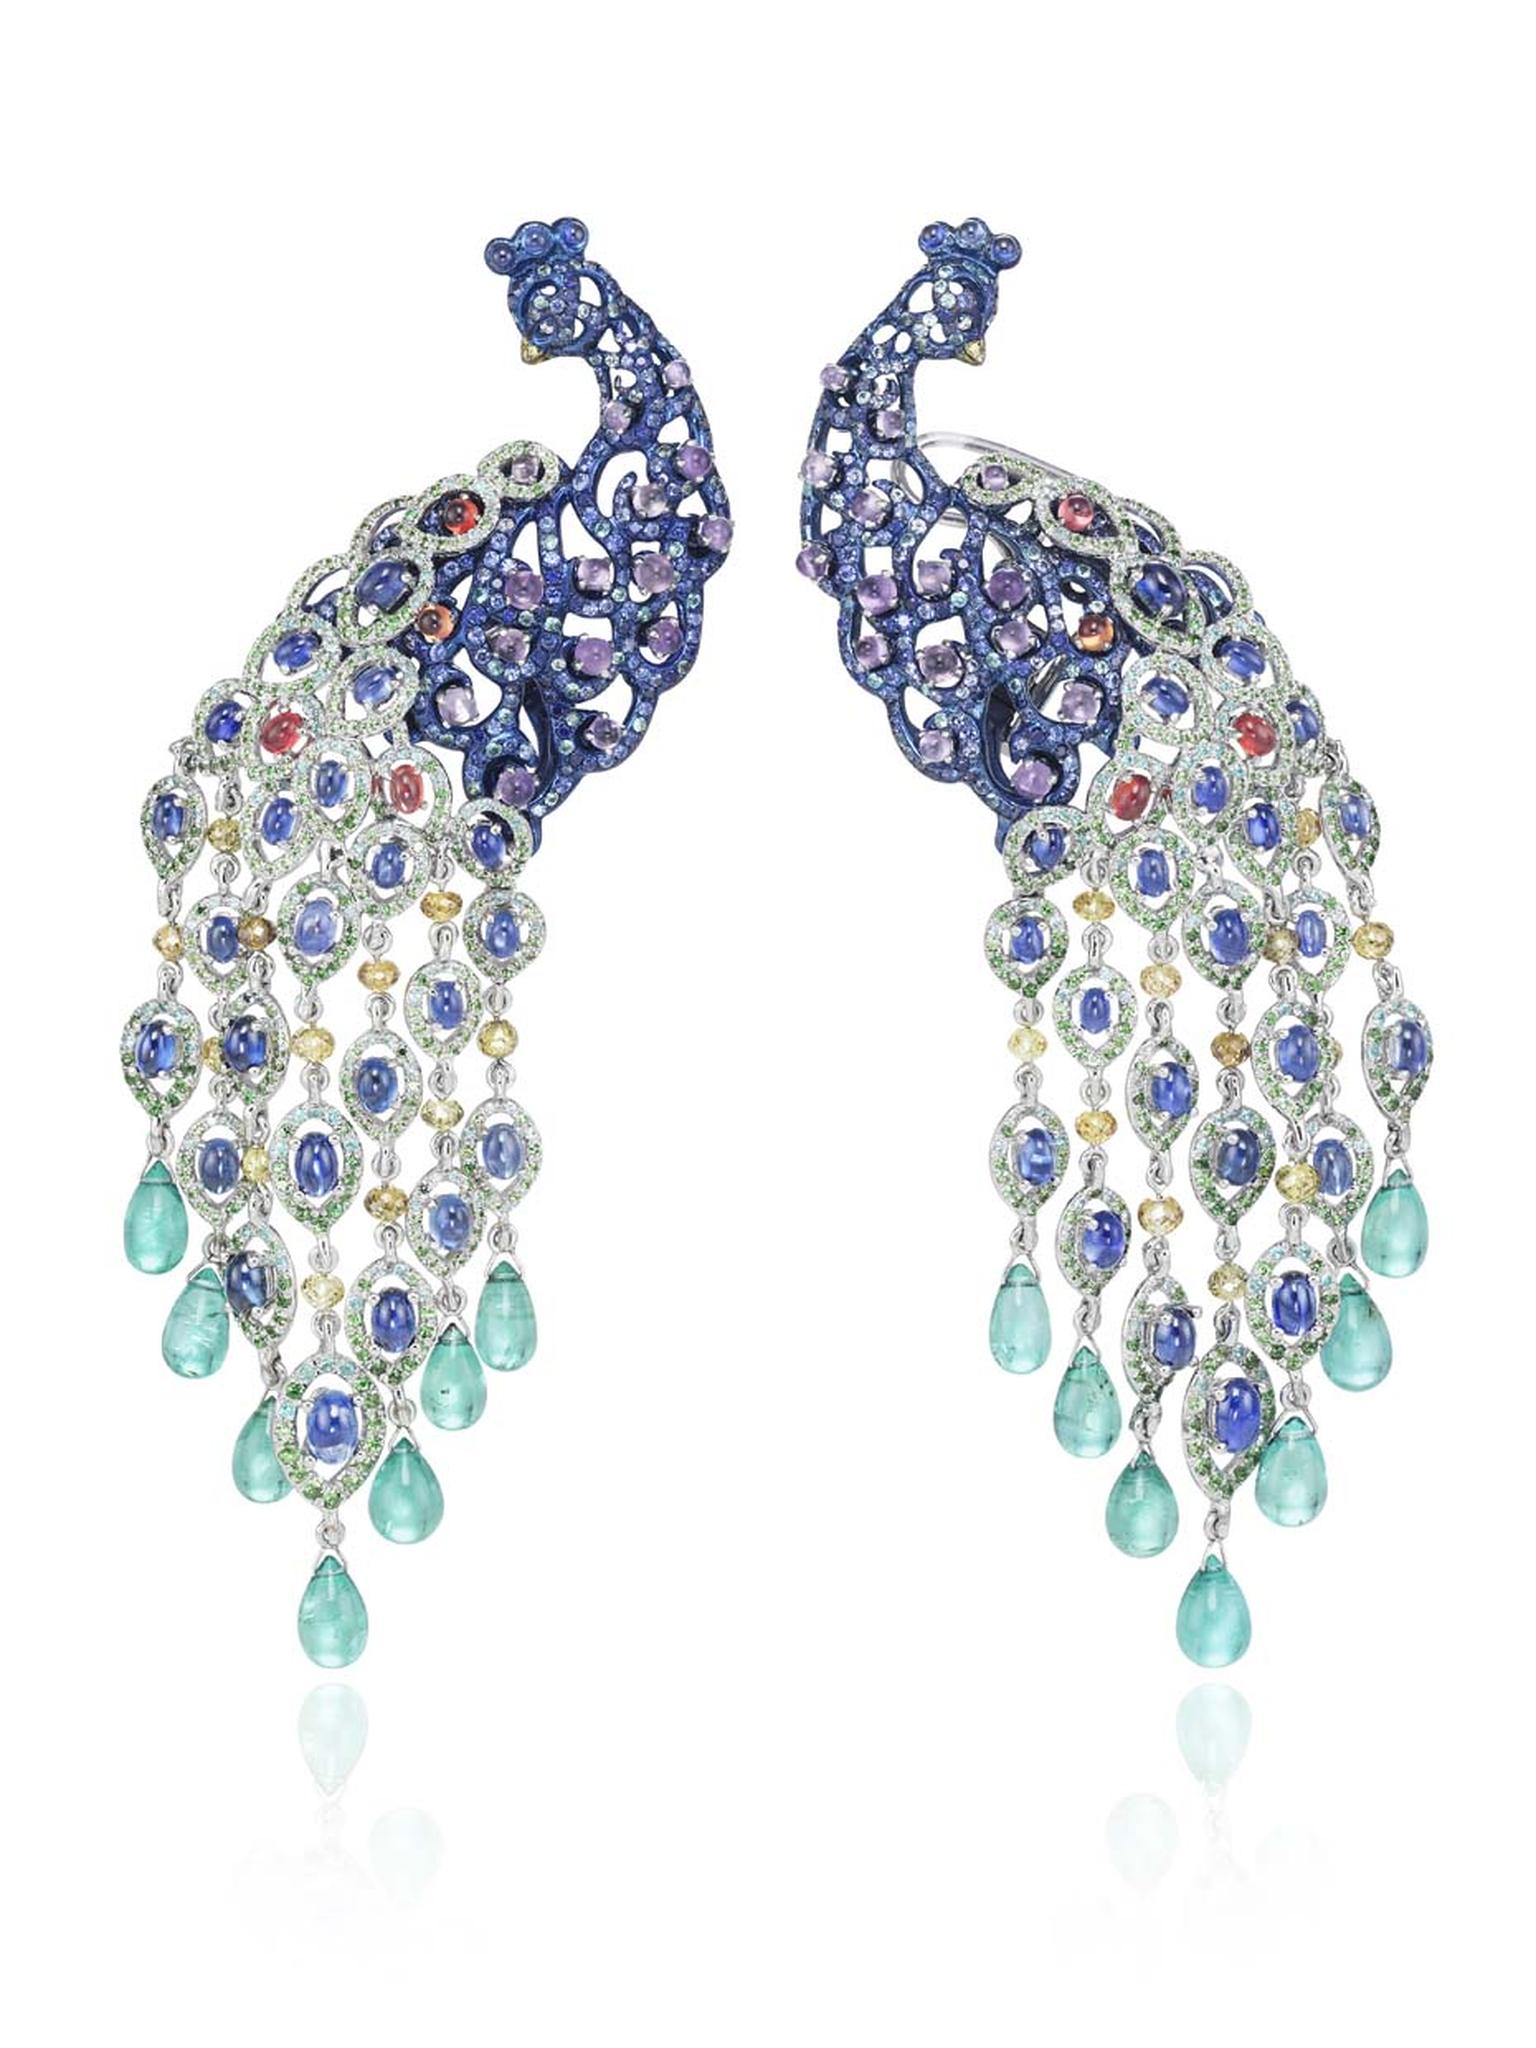 These jaw-dropping Chopard earrings from the Animal World collection, set in a colourful rhapsody of precious stones, including sapphires, tsavorites, amethysts, tourmalines and diamonds, earned their place as one of our top pieces of high jewellery launc